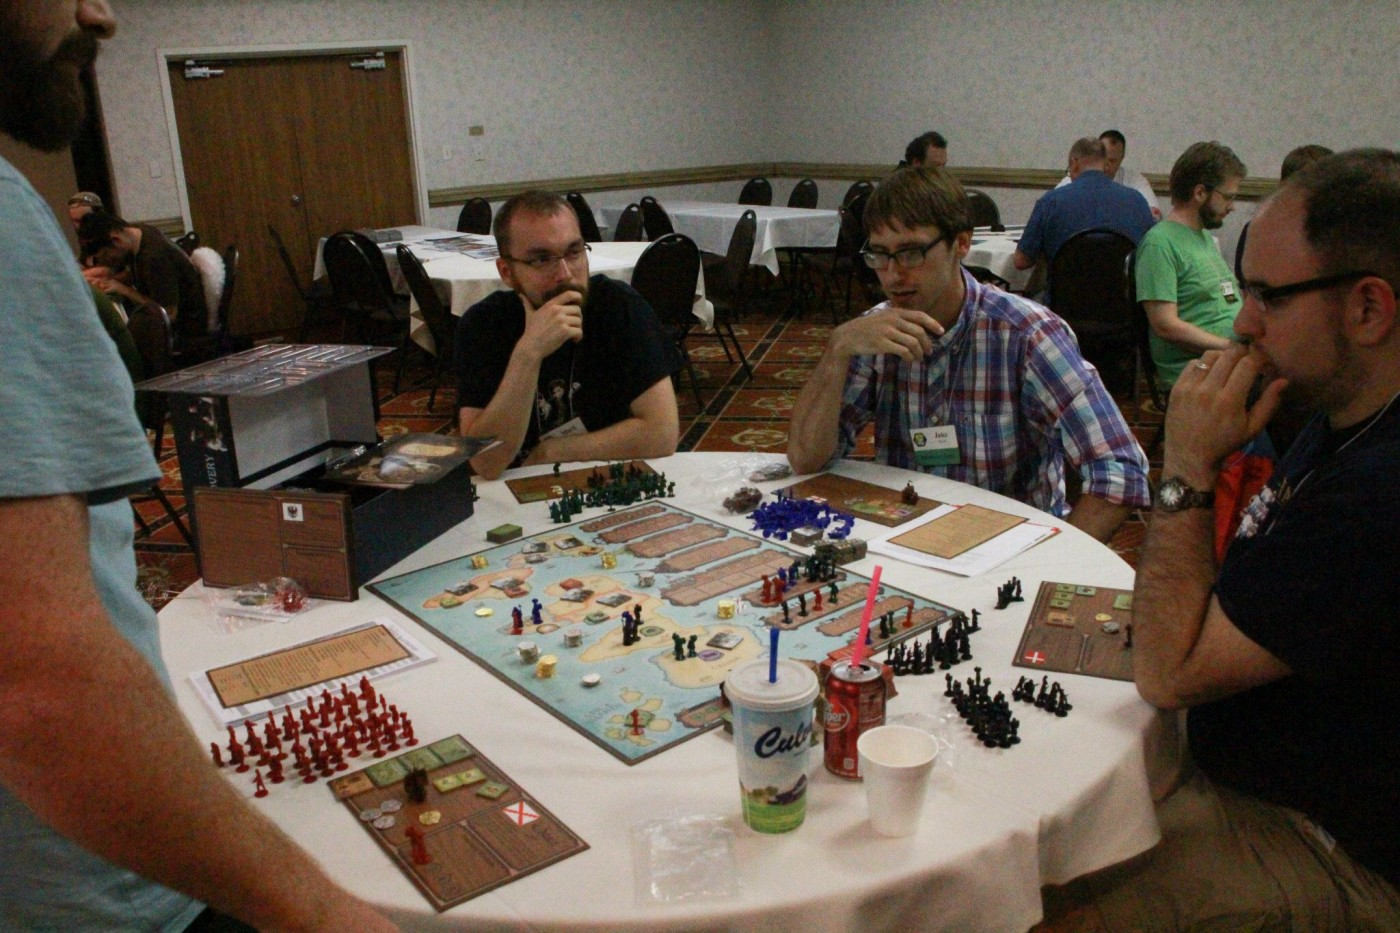 At the 2015 St. George Board Game Convention, St. George, Utah, Circa August 2015 | Photo courtesy of the St. George Board Game Convention, St. George News